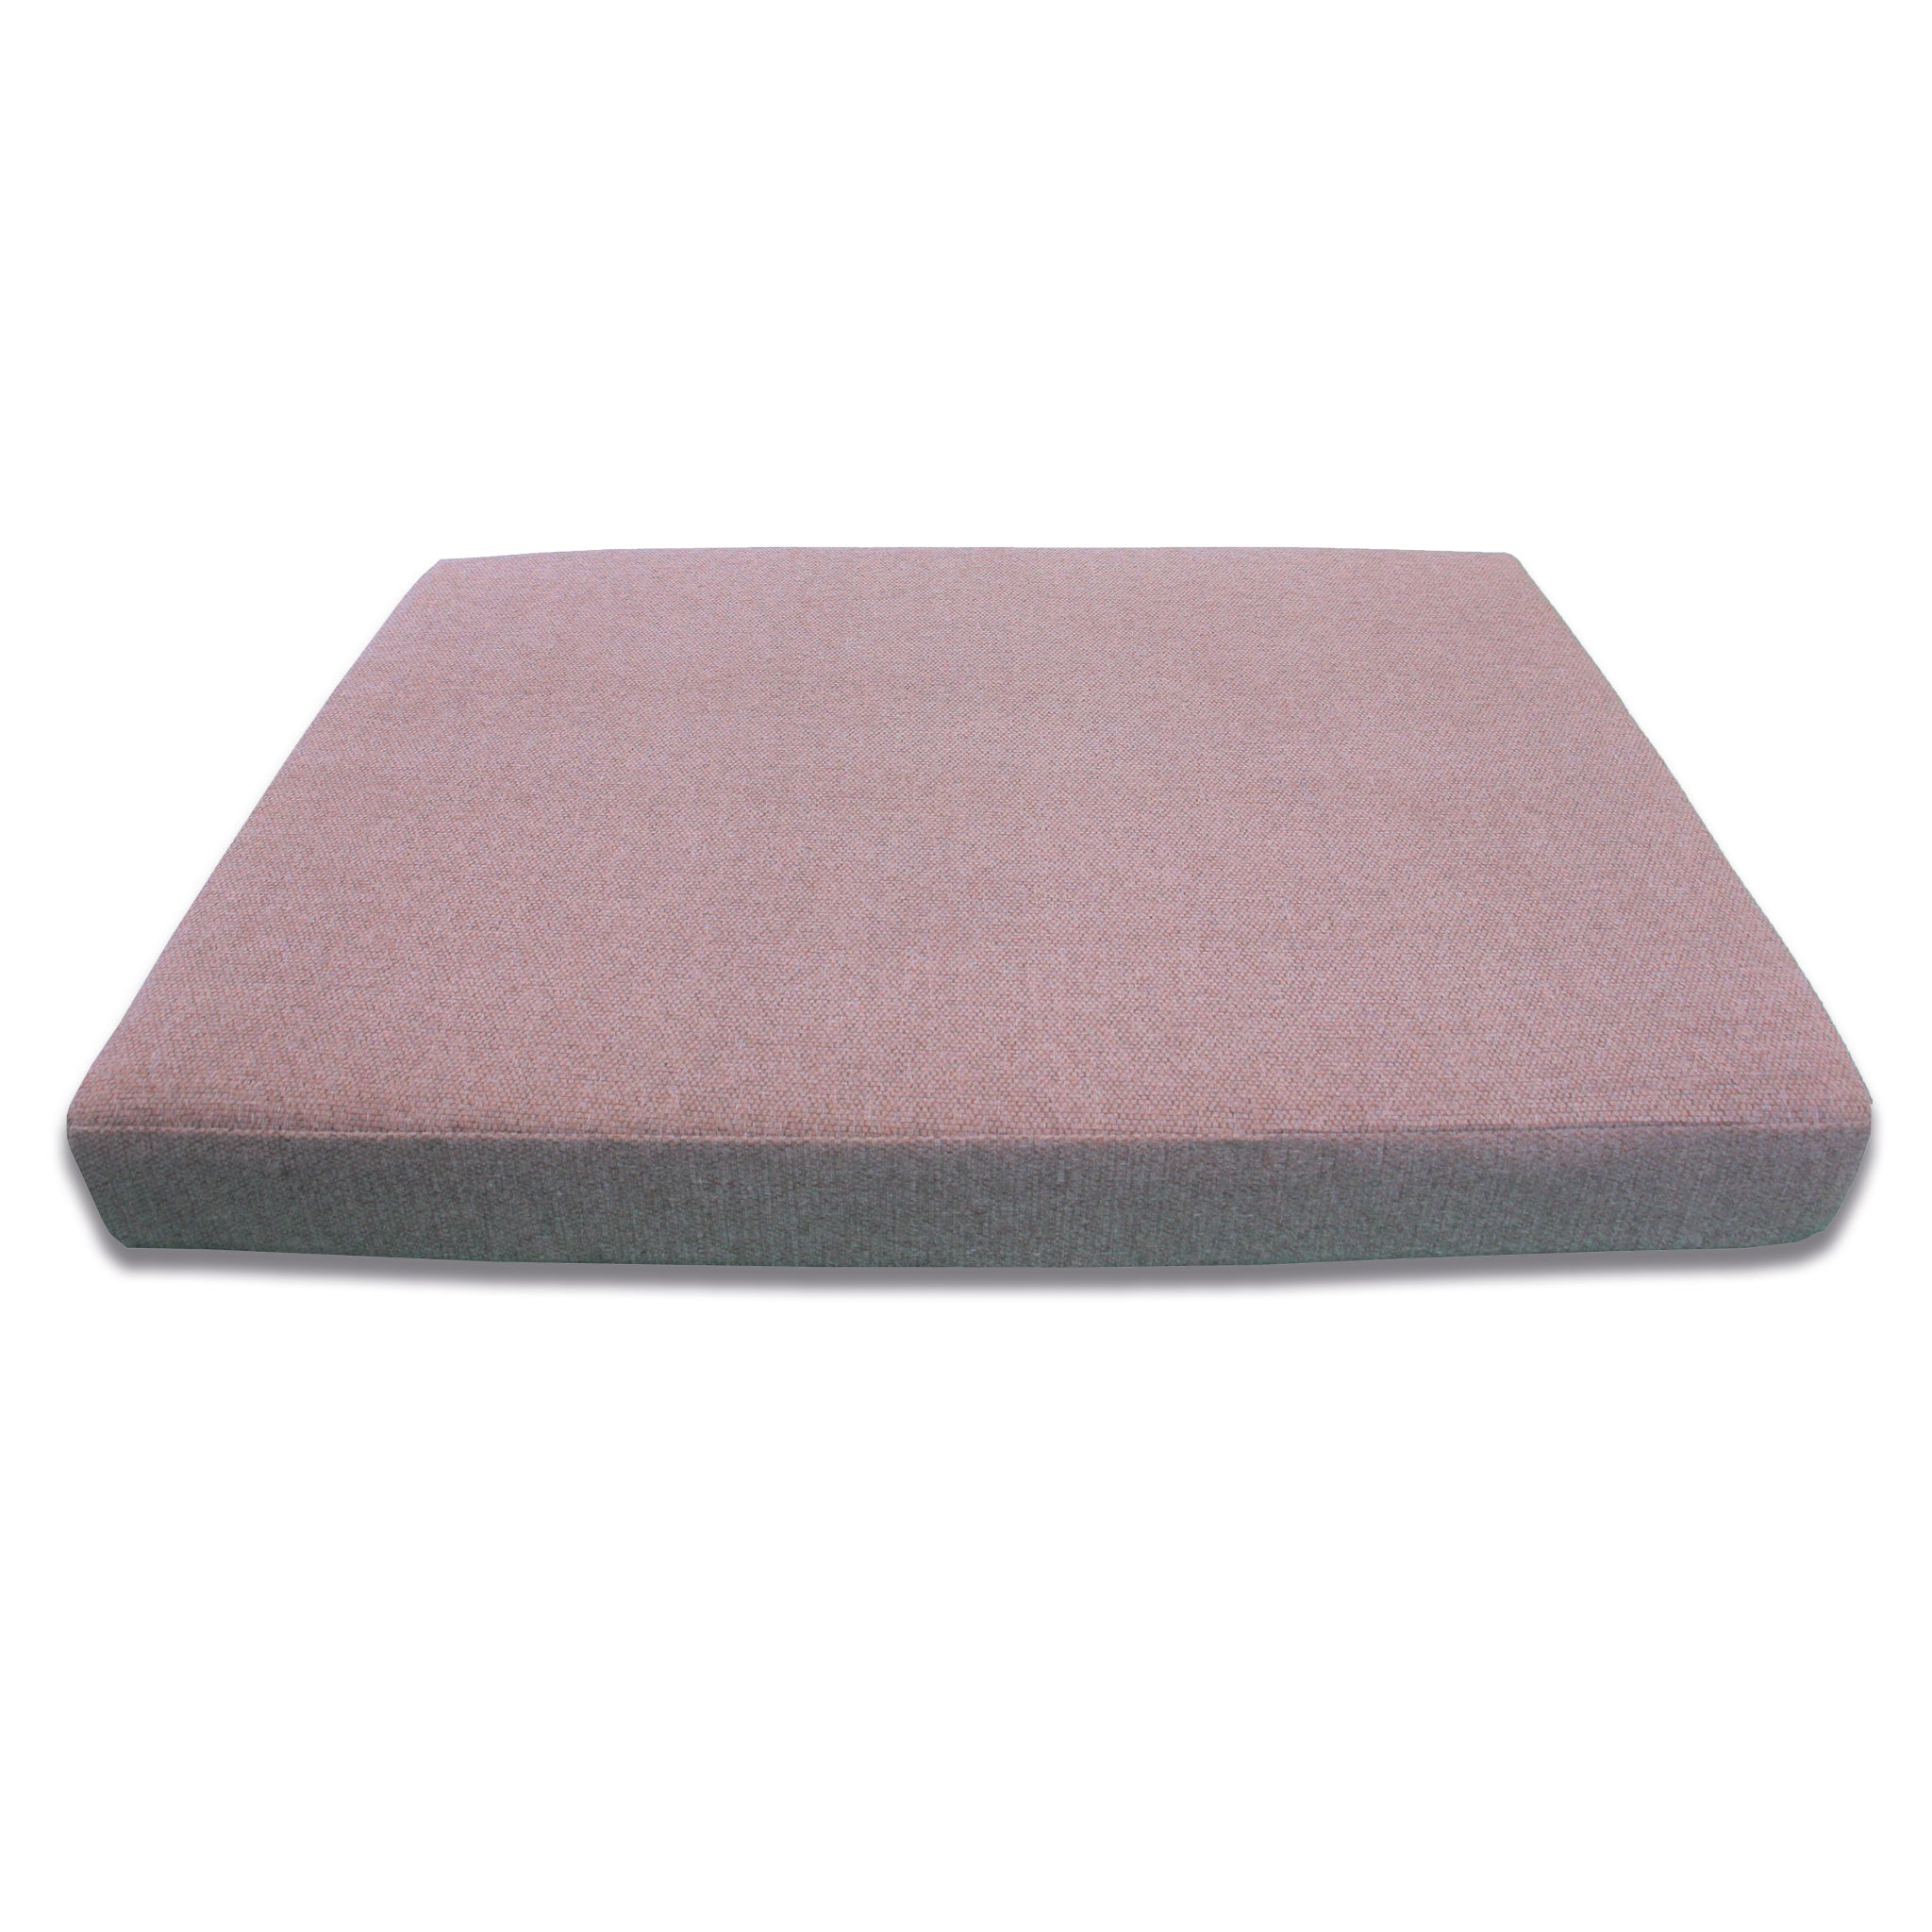 Orthopedisch Hondenkussen - Cozy Easy Clean Roze